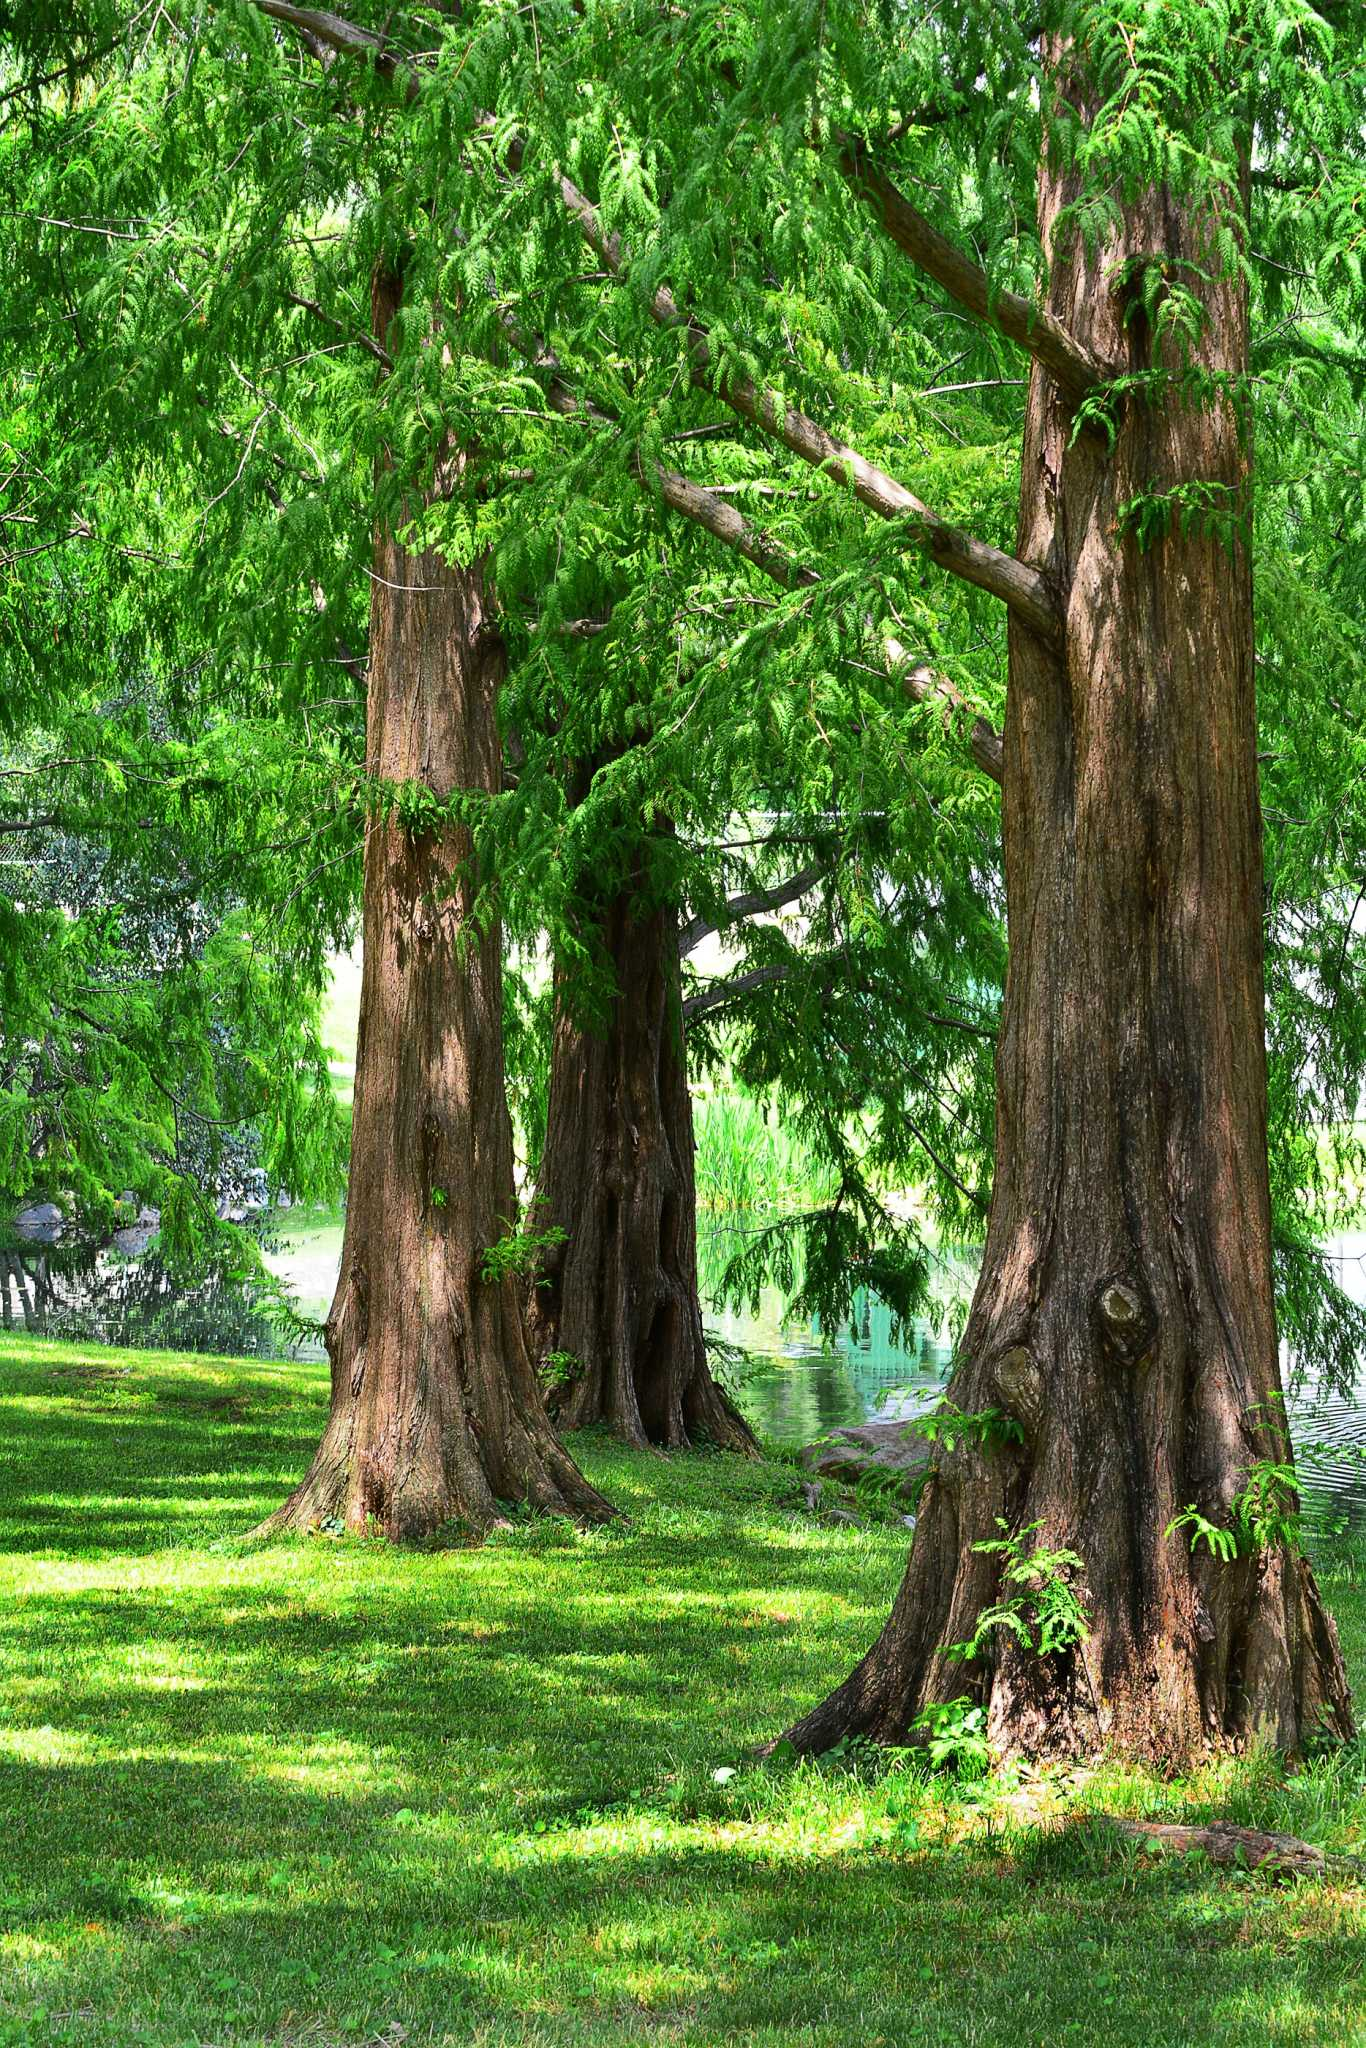 Landscaping With Redwood Trees : Things we do to our trees and read more here see the last